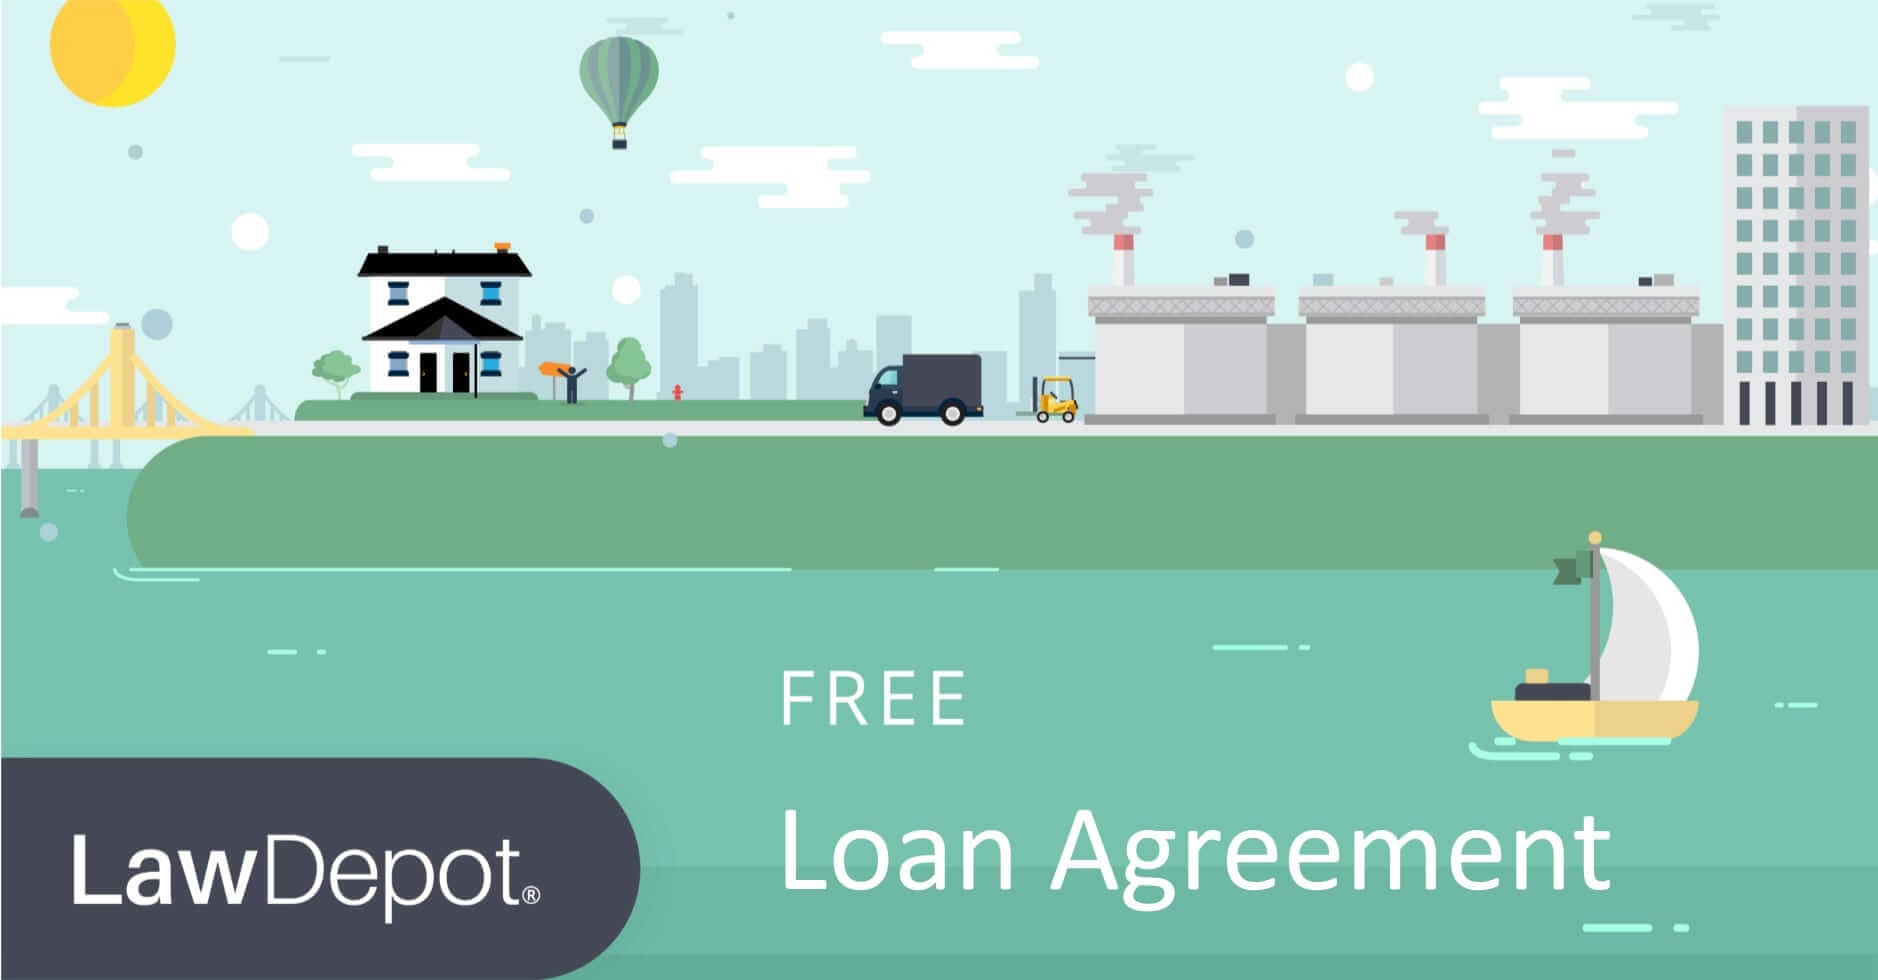 LawDepot  Interest Free Loan Agreement